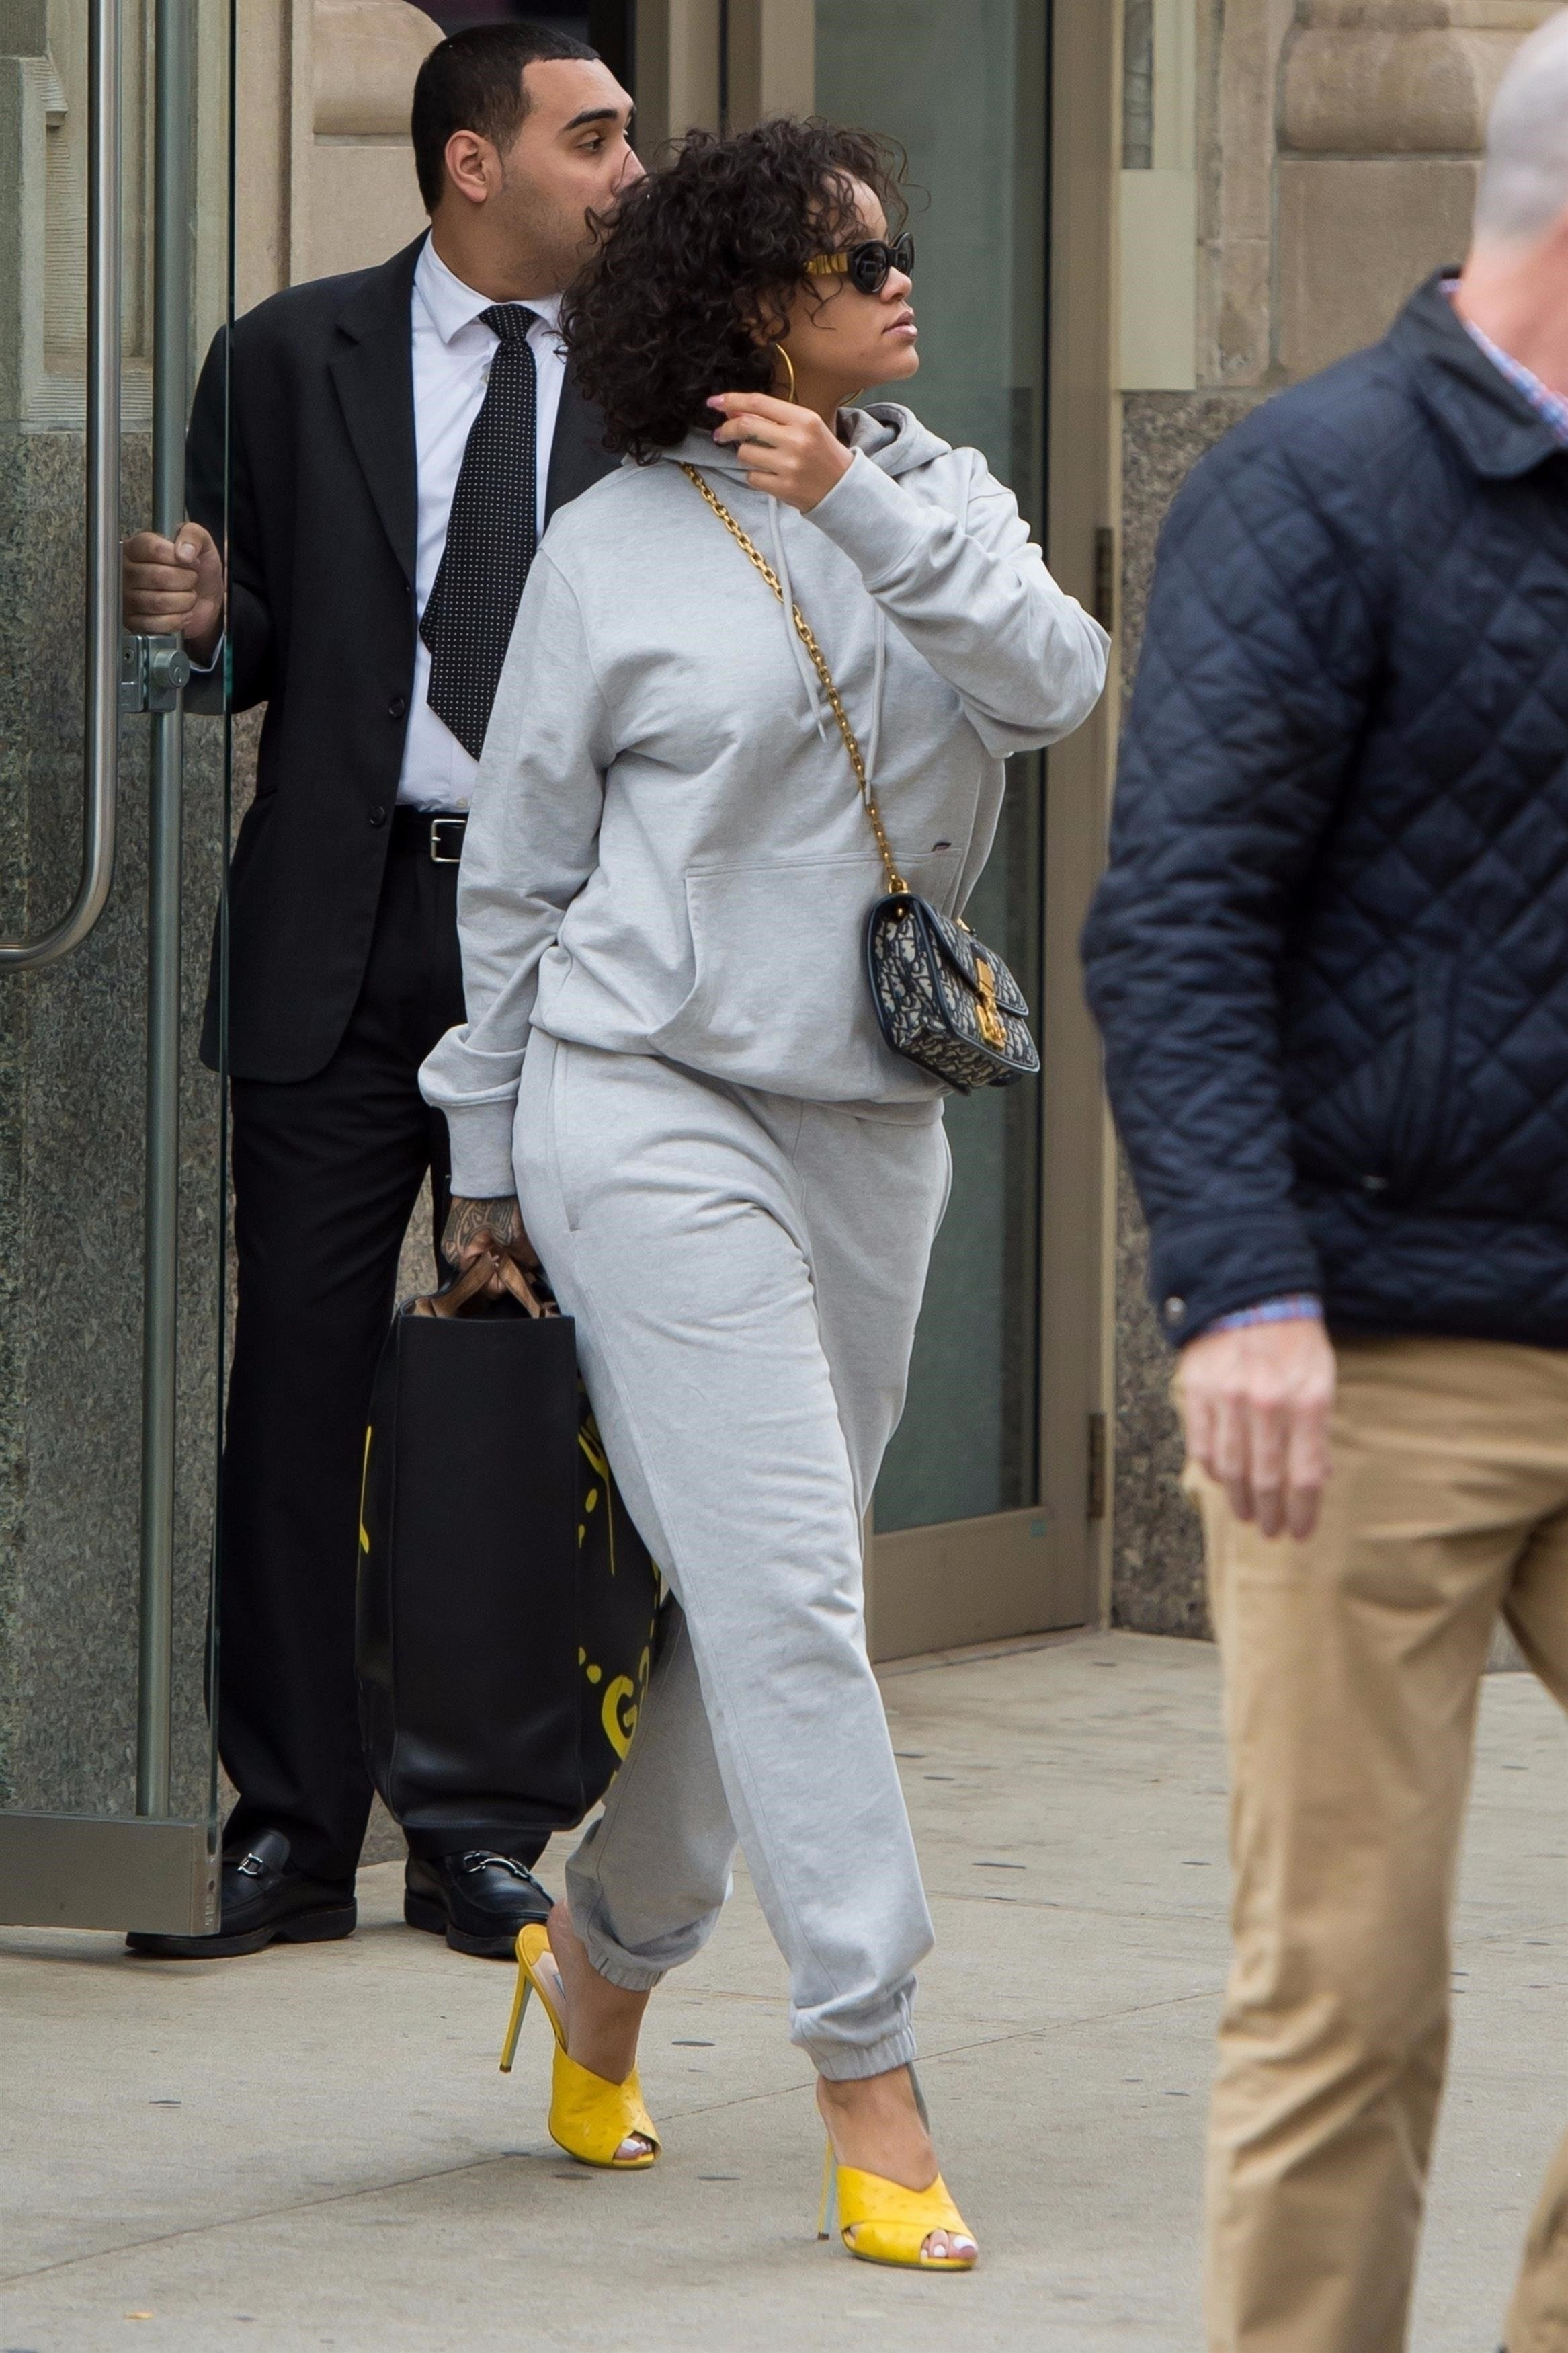 New York, NY  - *EXCLUSIVE*  - Pop star Rihanna keeps things comfy but stylish while stepping out in a grey sweatsuit paired with yellow open toe heels in New York City.  Pictured: Rihanna  BACKGRID USA 26 OCTOBER 2017, Image: 353951047, License: Rights-managed, Restrictions: , Model Release: no, Credit line: Profimedia, AKM-GSI